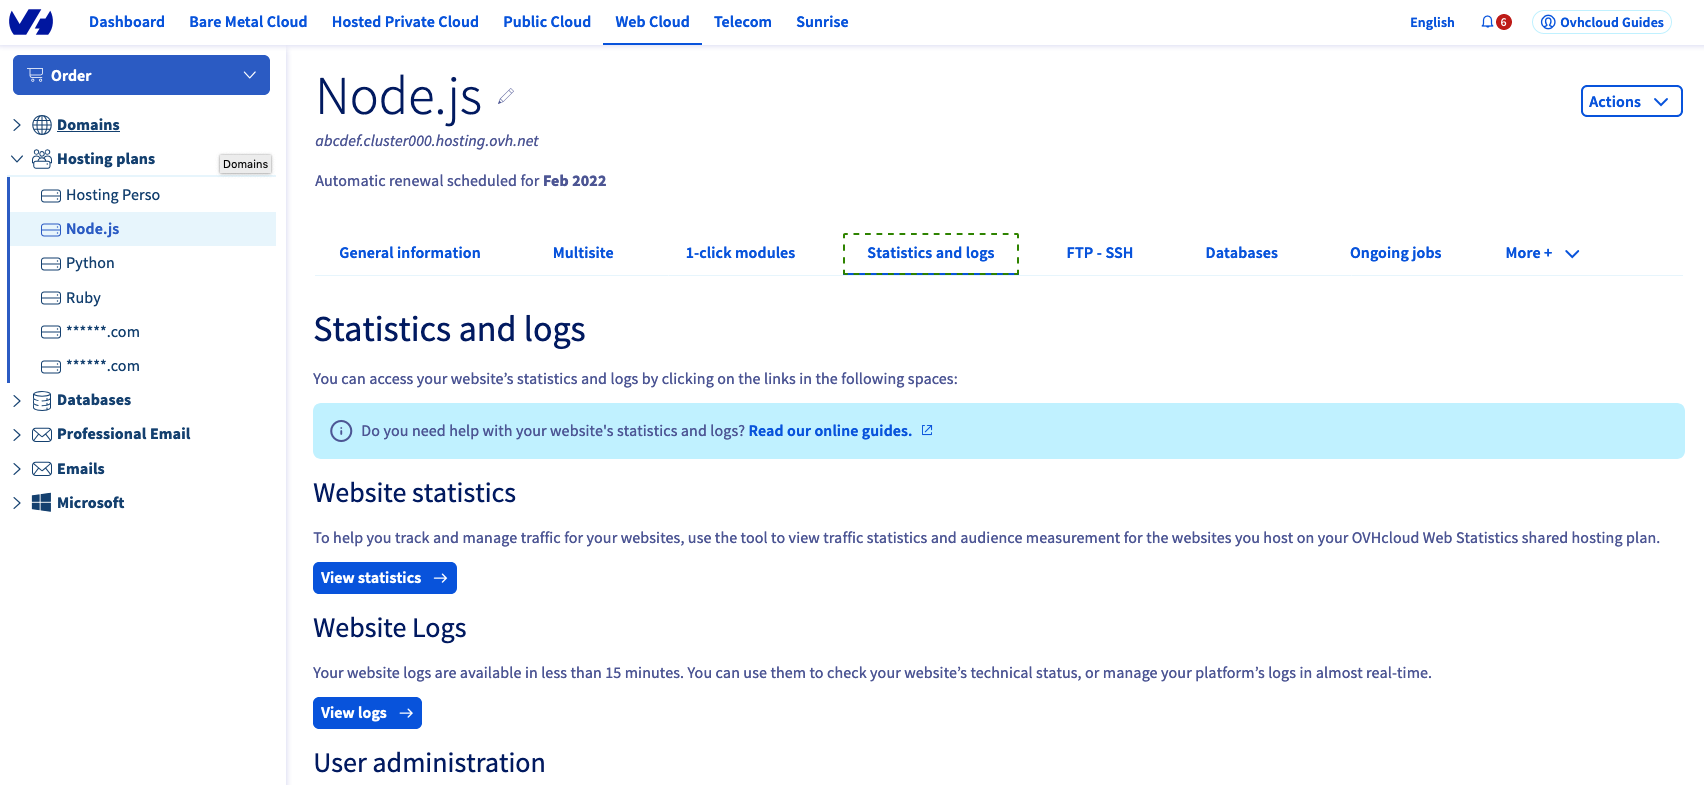 Accessing logs and statistics